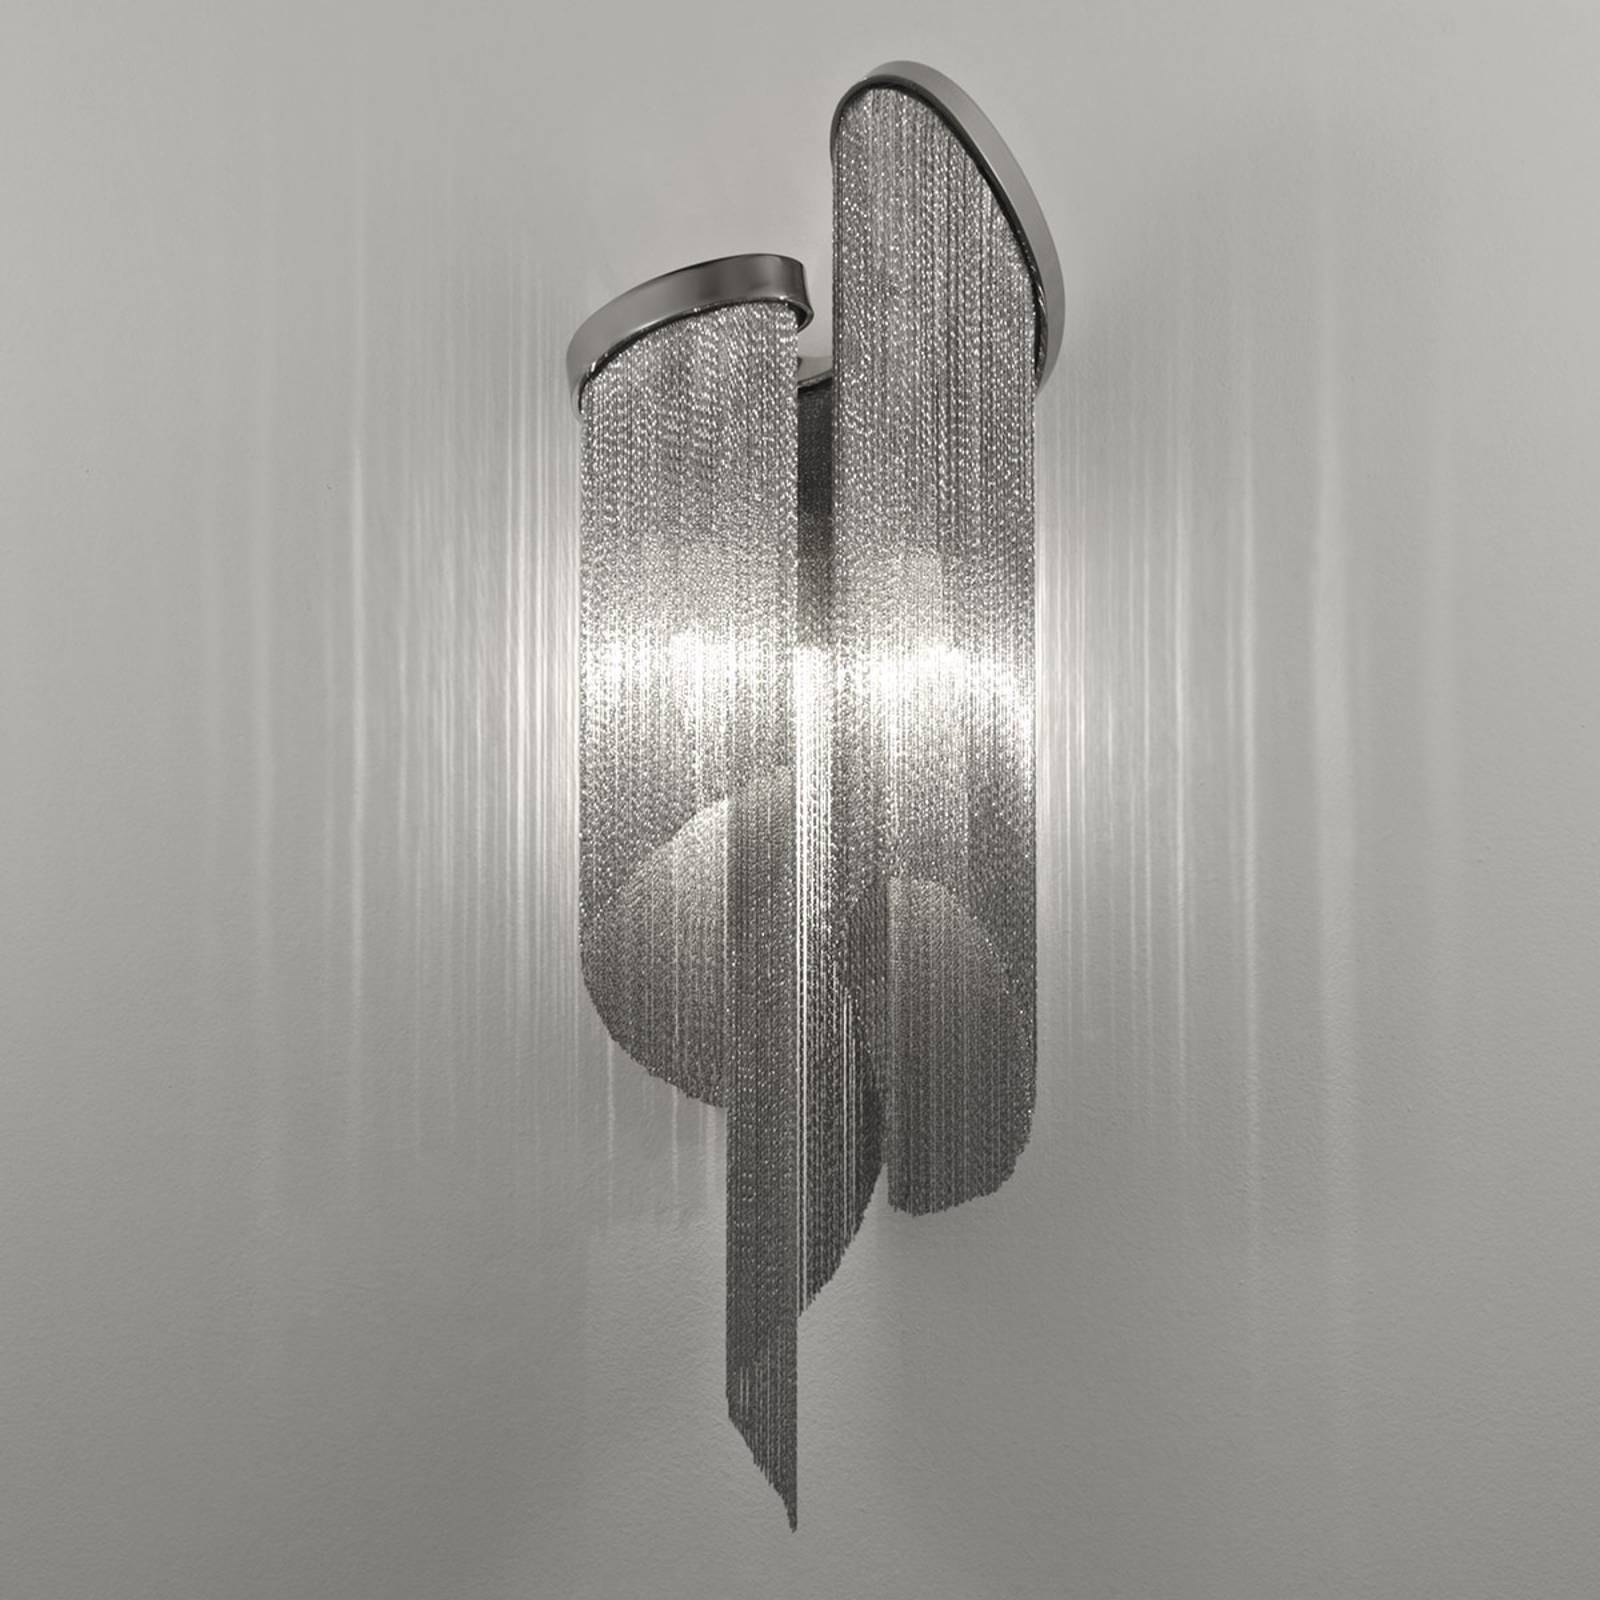 Stream wall light with a vibrant light effect from Terzani